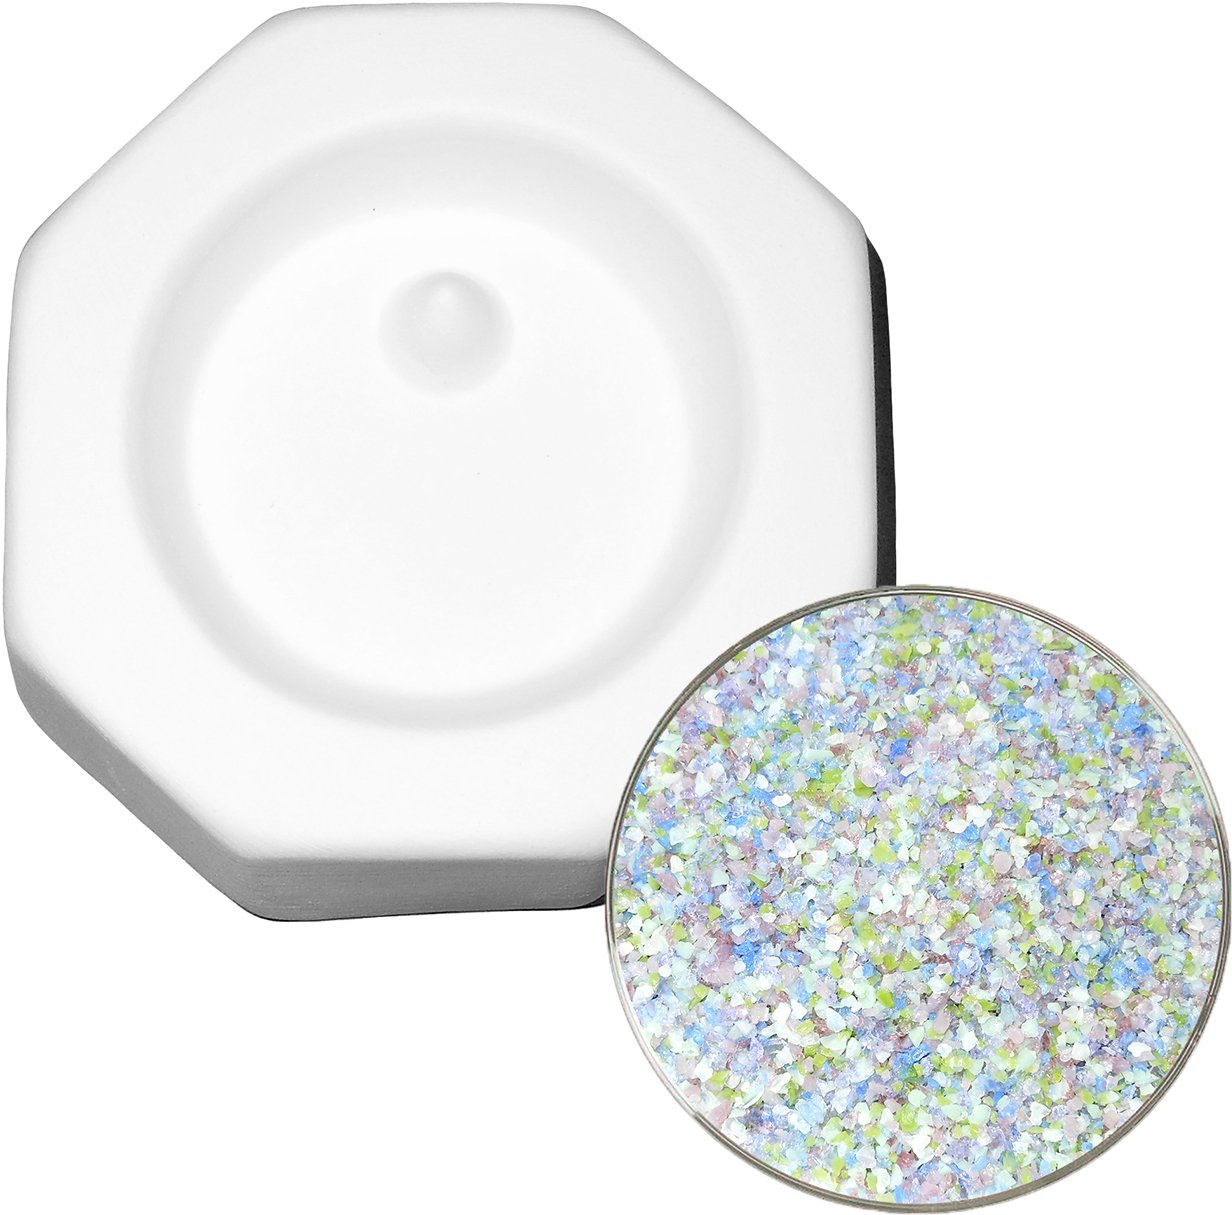 Circle Pendant with Hole and Designer Fusible Glass Frit Sampler Kit, 90COE - Fusible Glass Jewelry Mold New Hampshire Craftworks